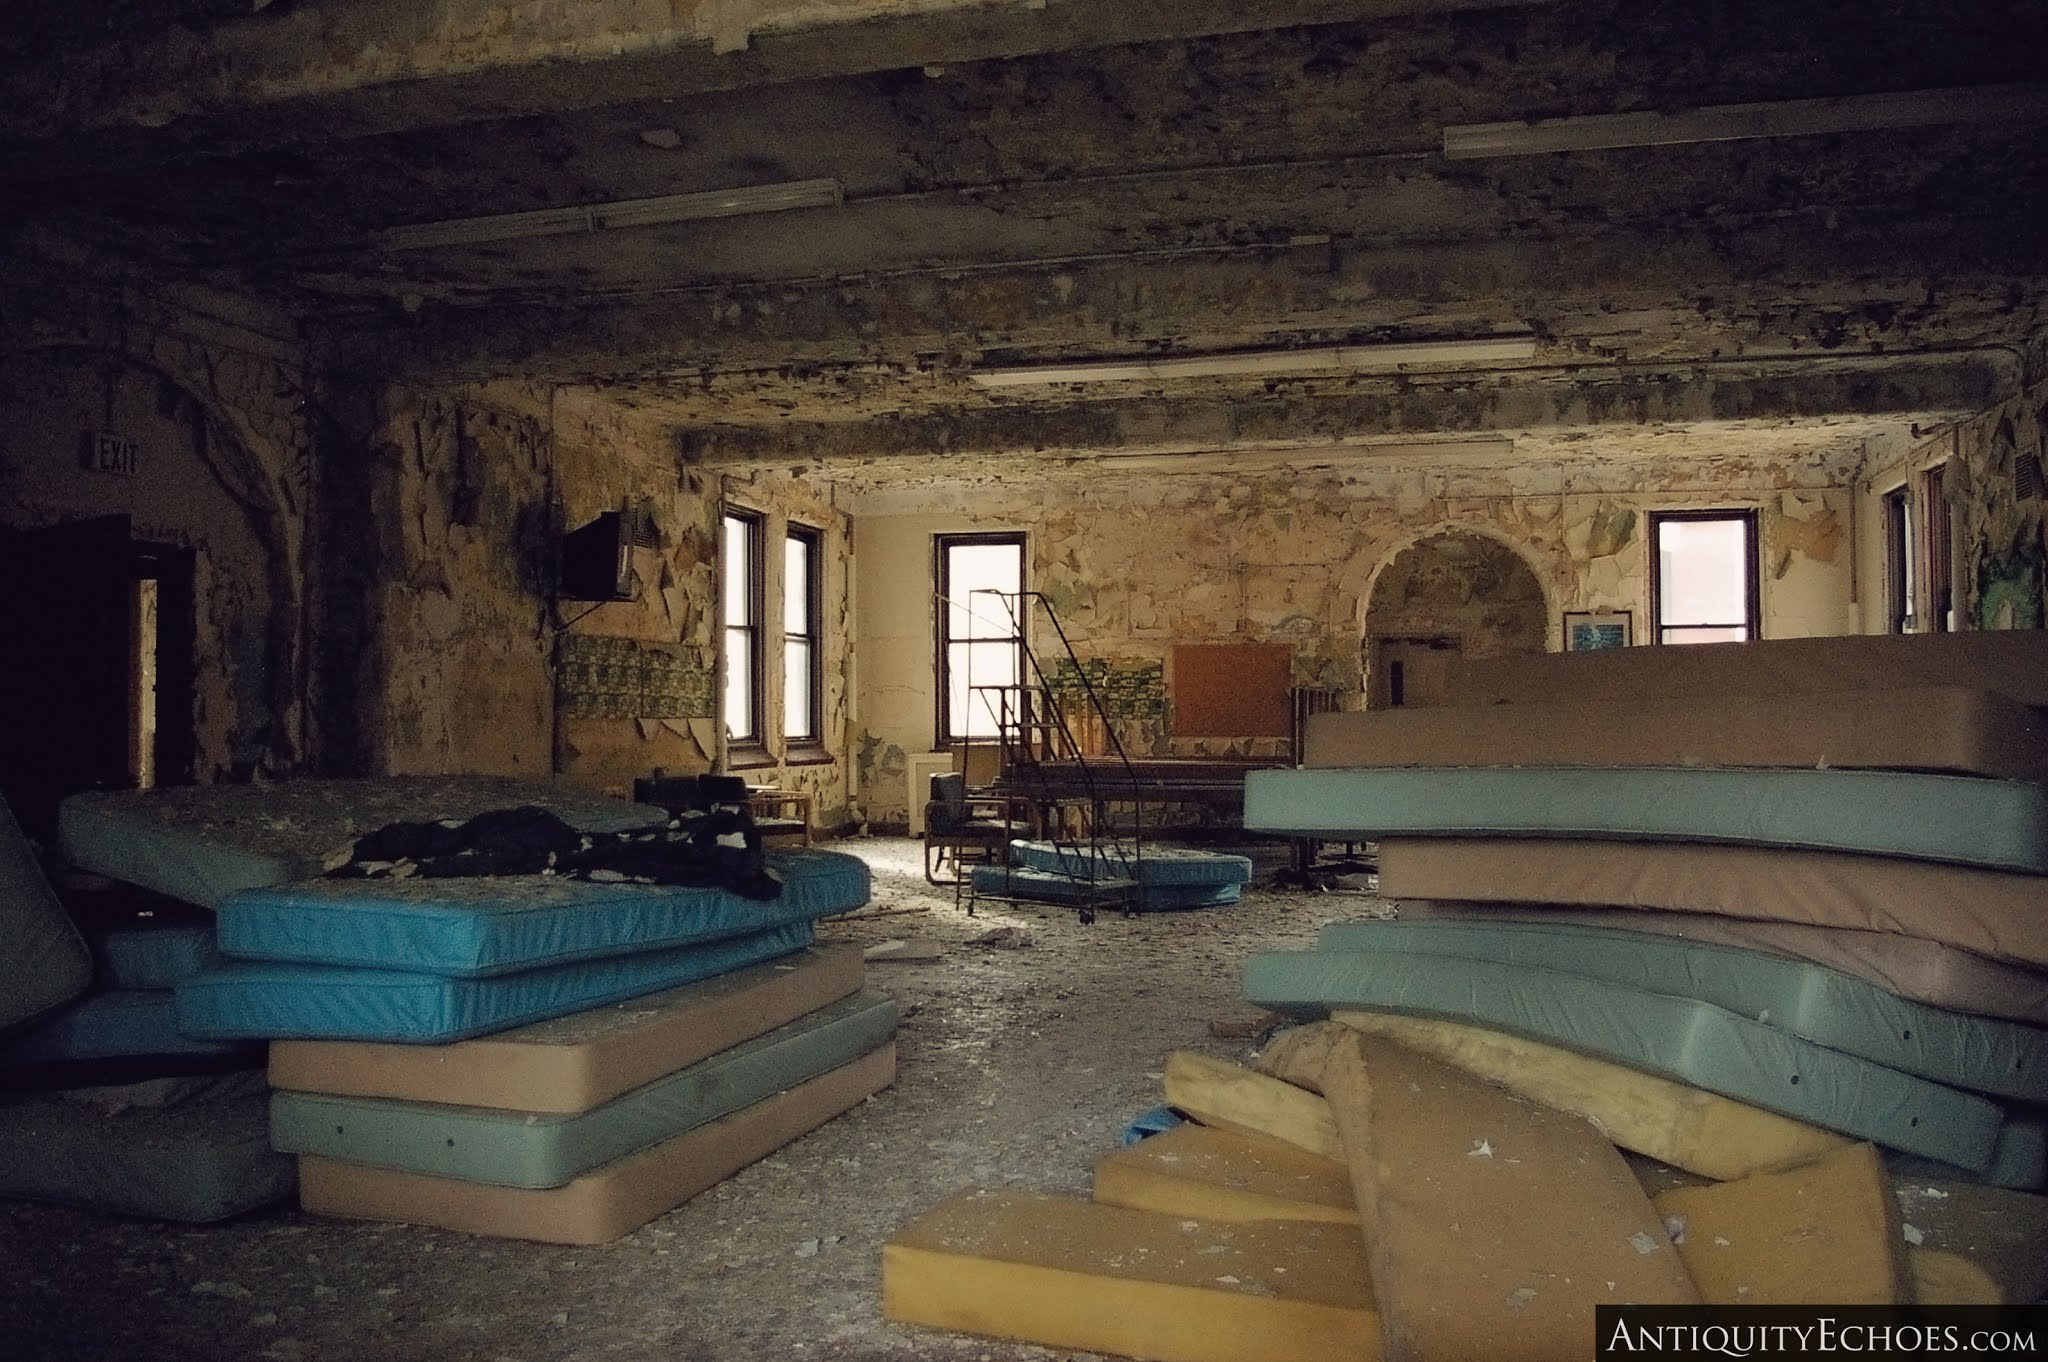 Overbrook Asylum - Disused Mattresses Stacked in a Dayroom